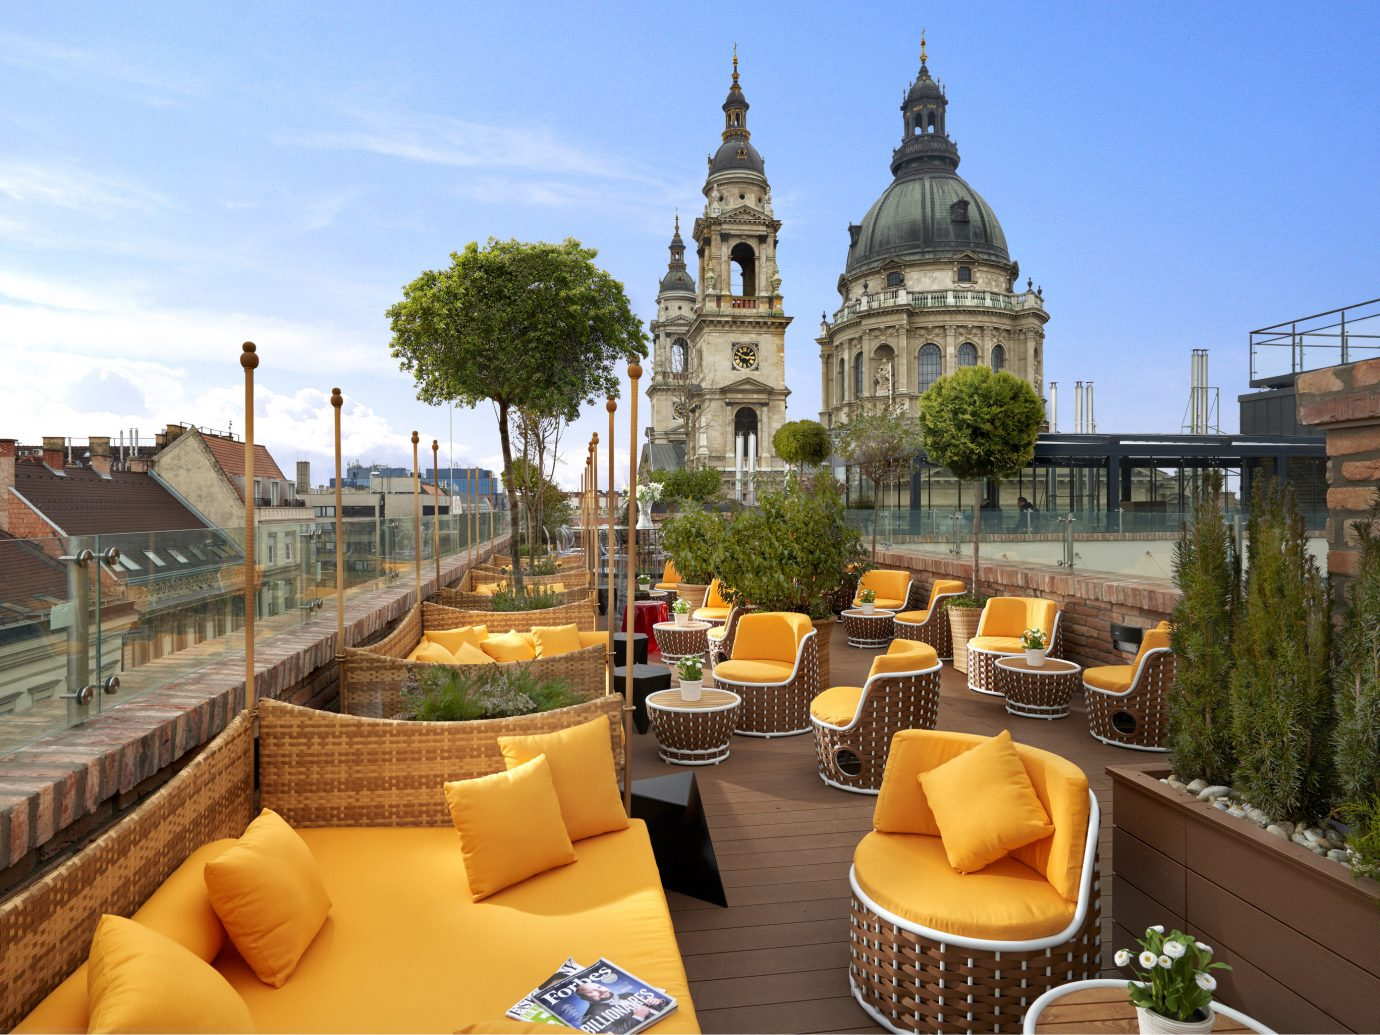 Budapest europe Hotels Hungary outdoor sky plaza palace estate tourism Resort Courtyard town square